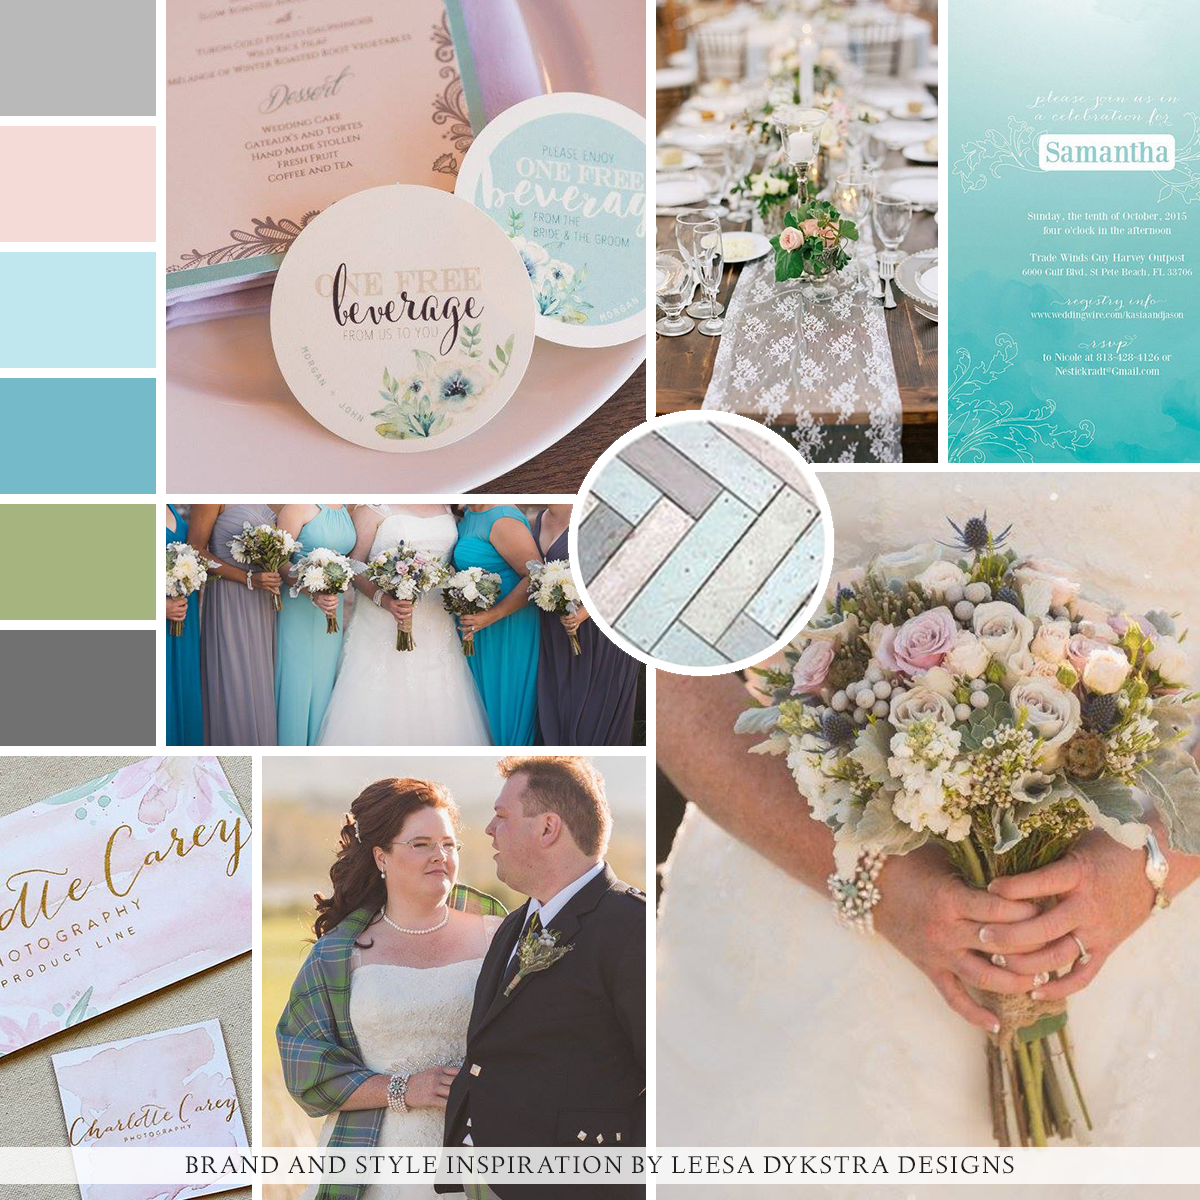 Brand and Style Inspiration for Amazing Day Photography by Leesa Dykstra Designs